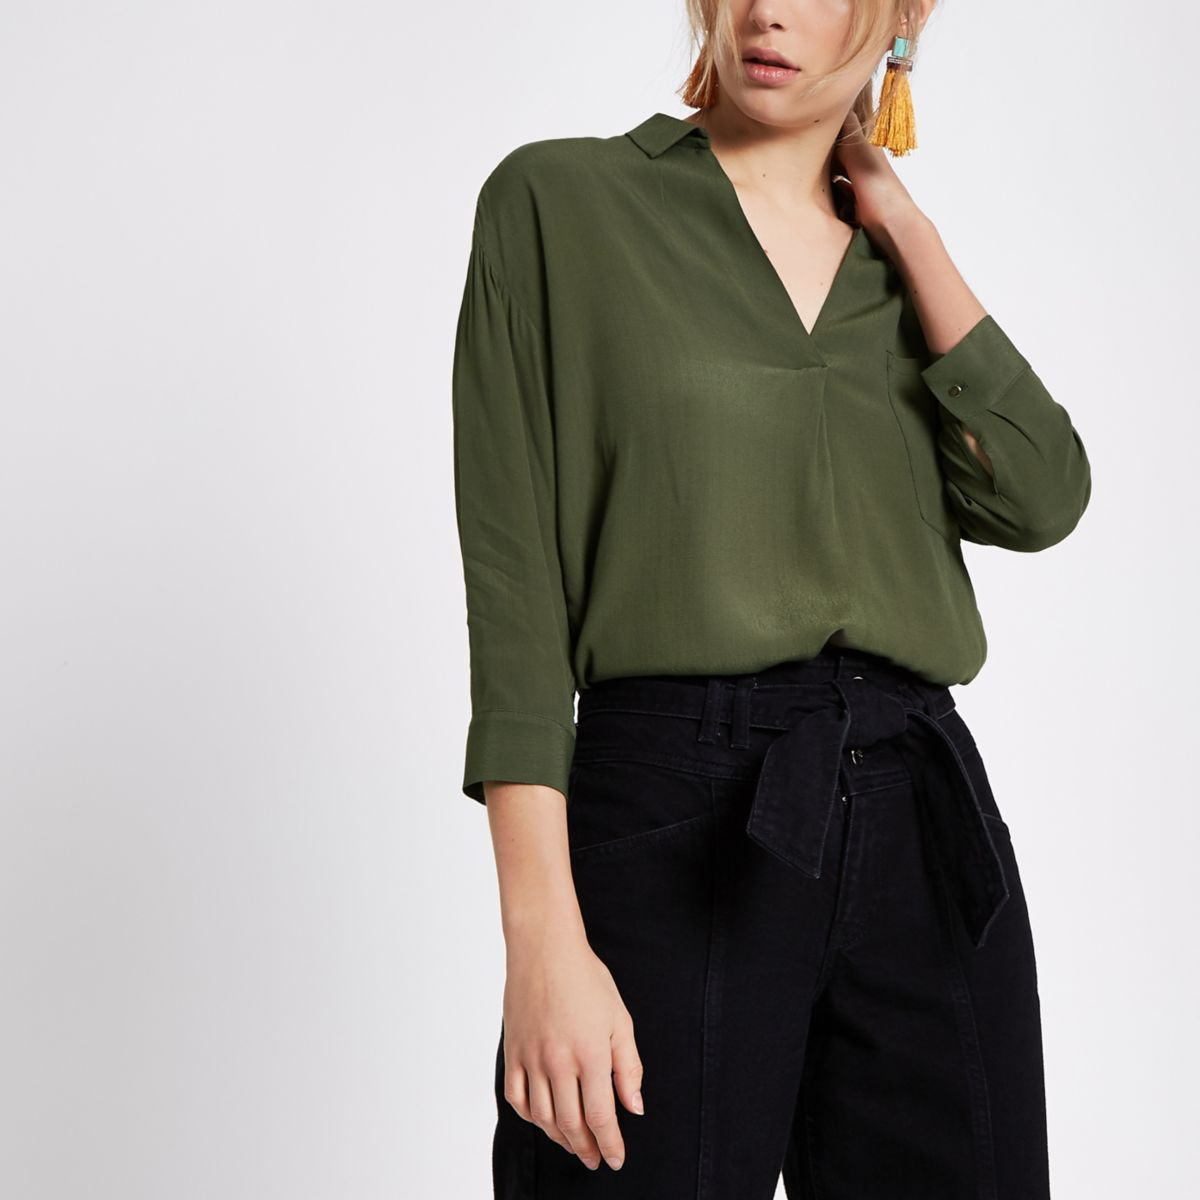 Khaki green cross back loose fit shirt